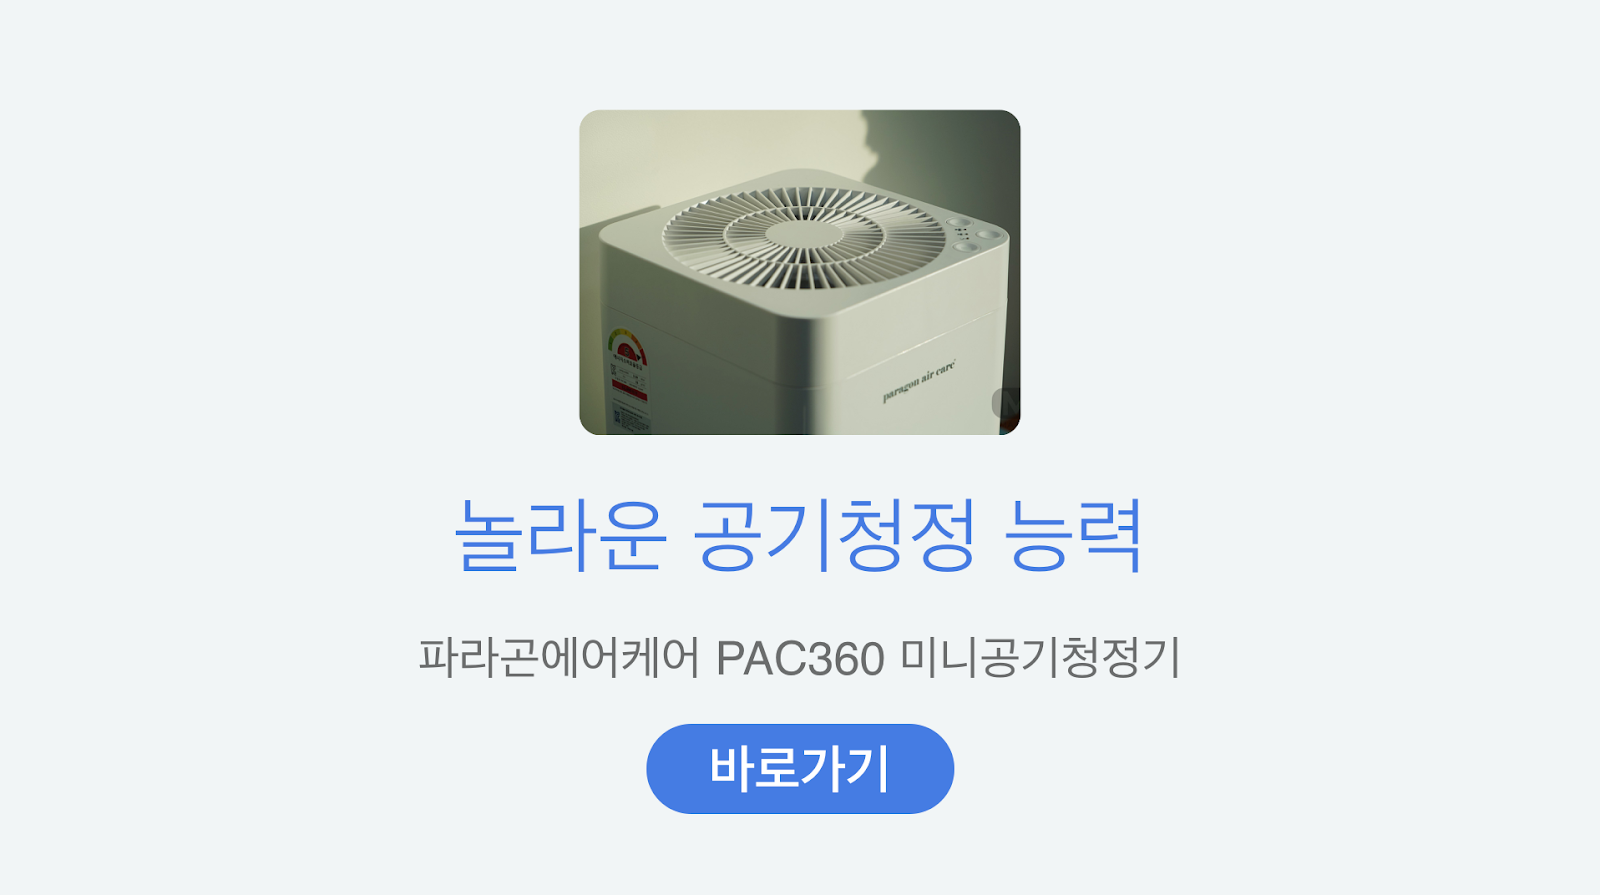 https://paragonclub.co.kr/product/detail.html?product_no=61&cate_no=1&display_group=3